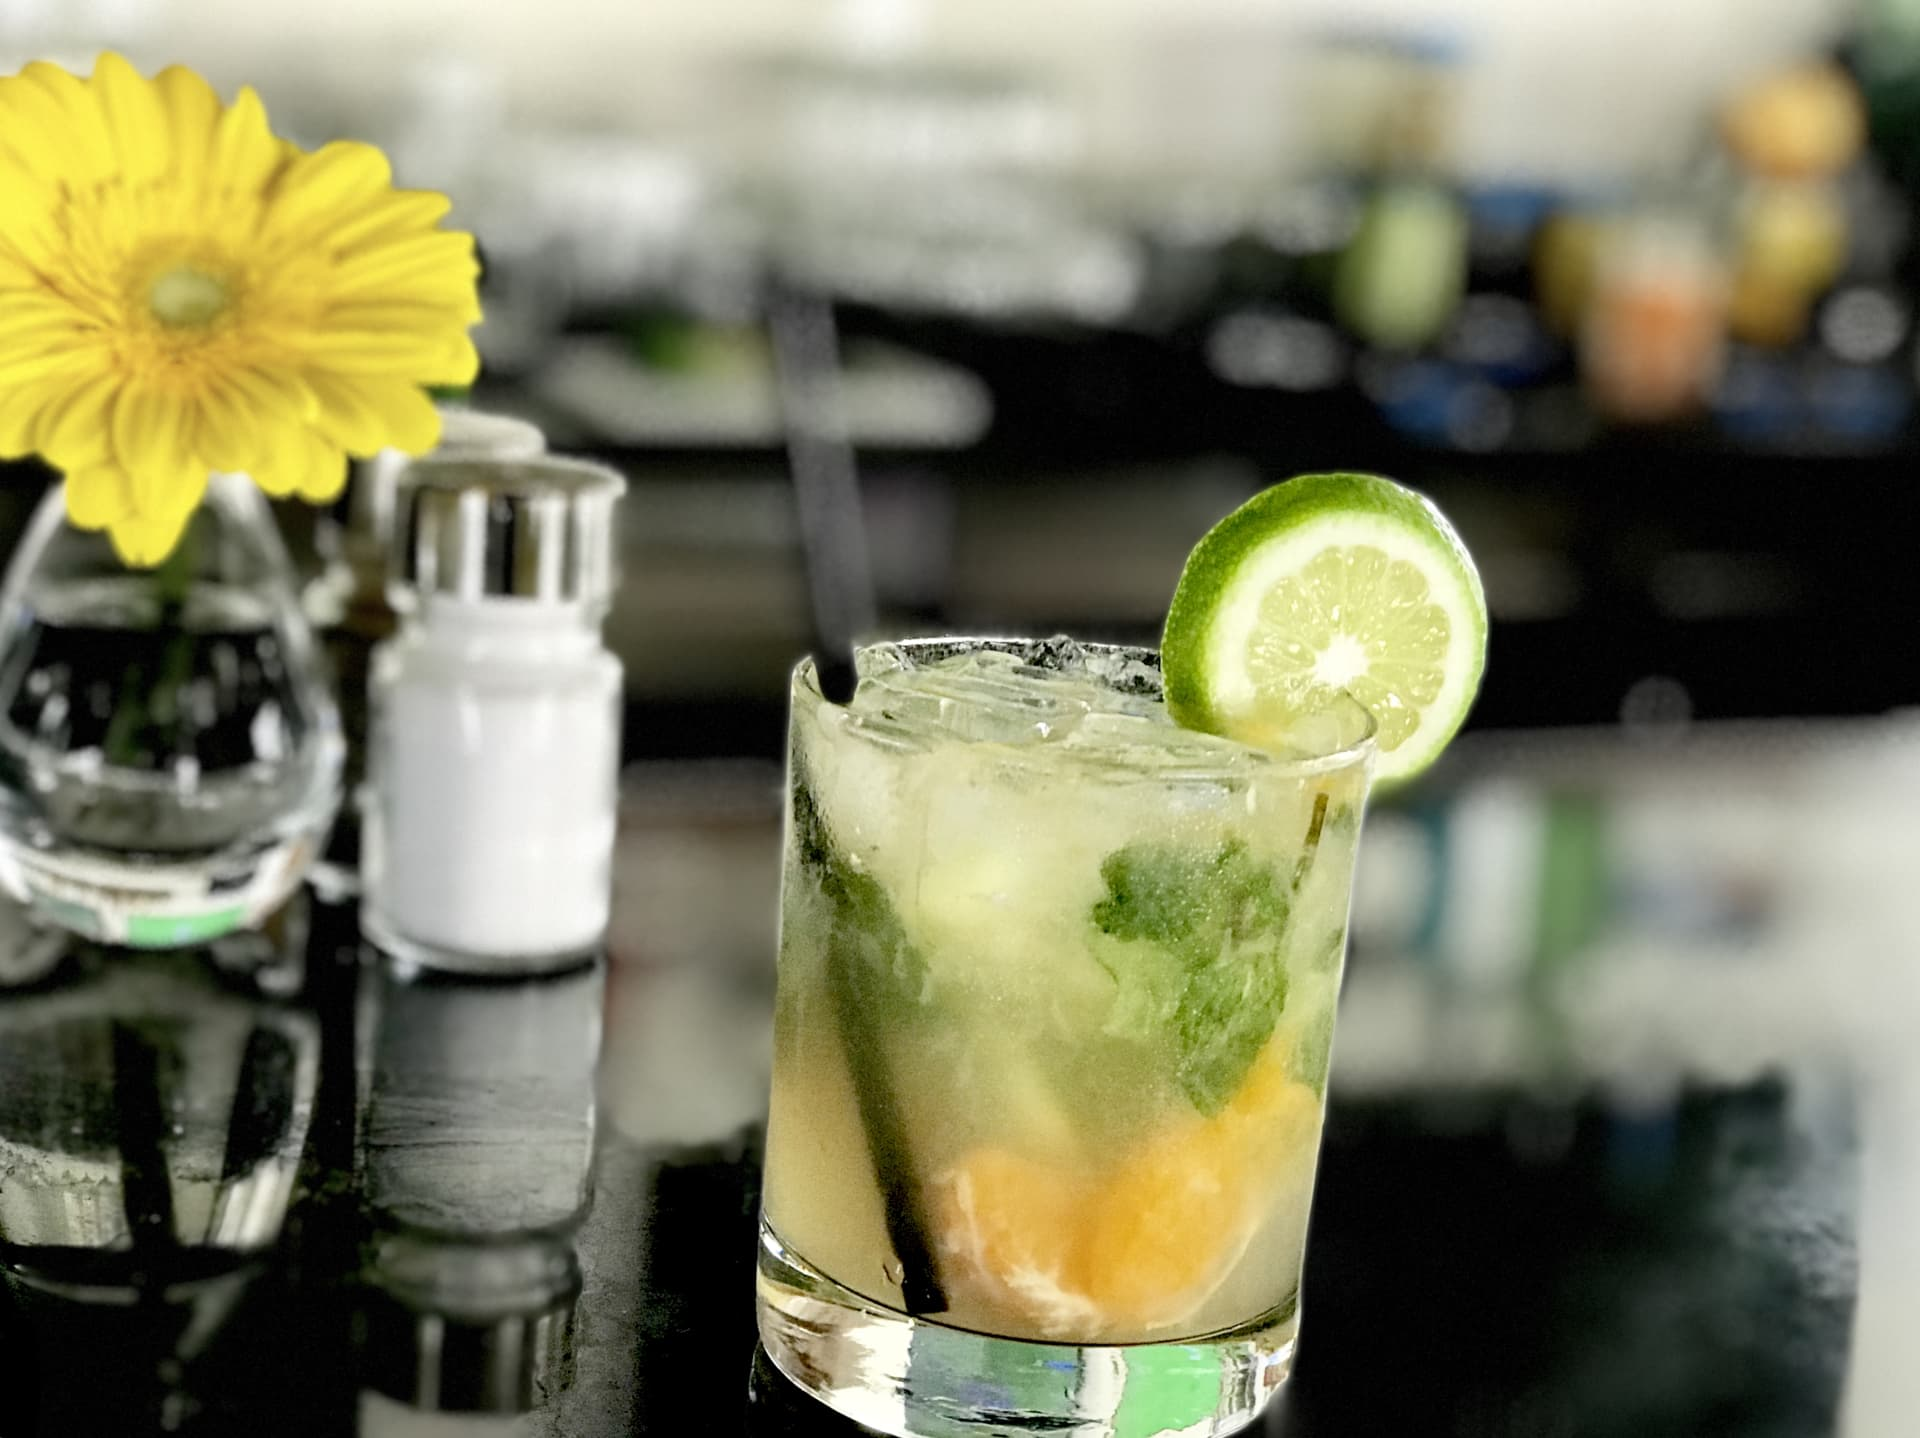 Mississippi Margarita w/ Lime, Mint, Cucumber & Tangerines